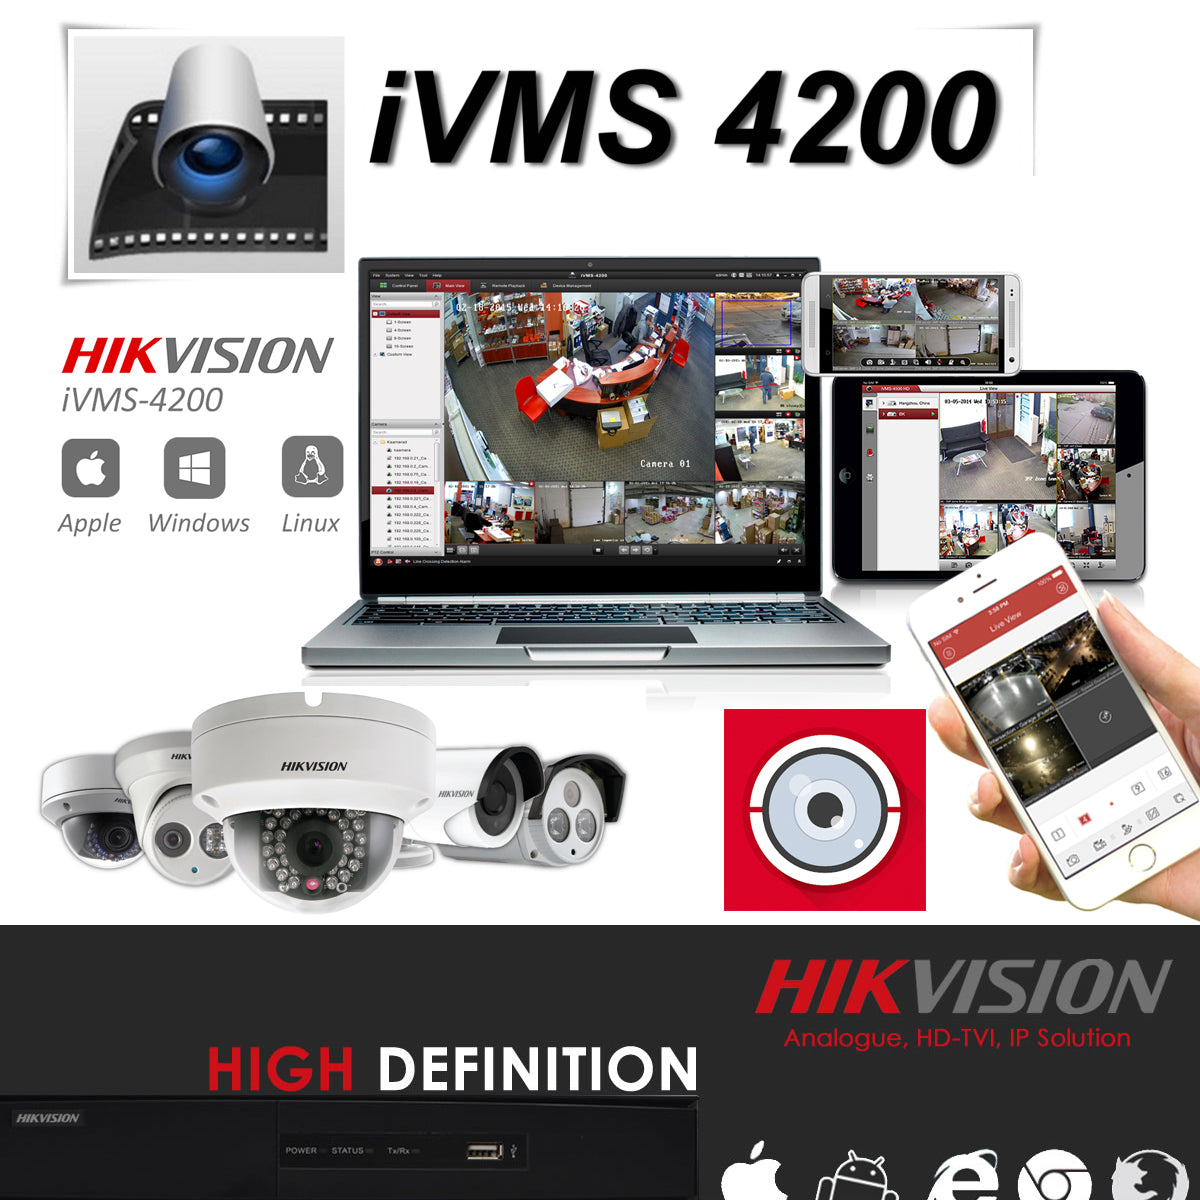 How to install iVMS-4200 for Hikvision DVRs on Mac OSX